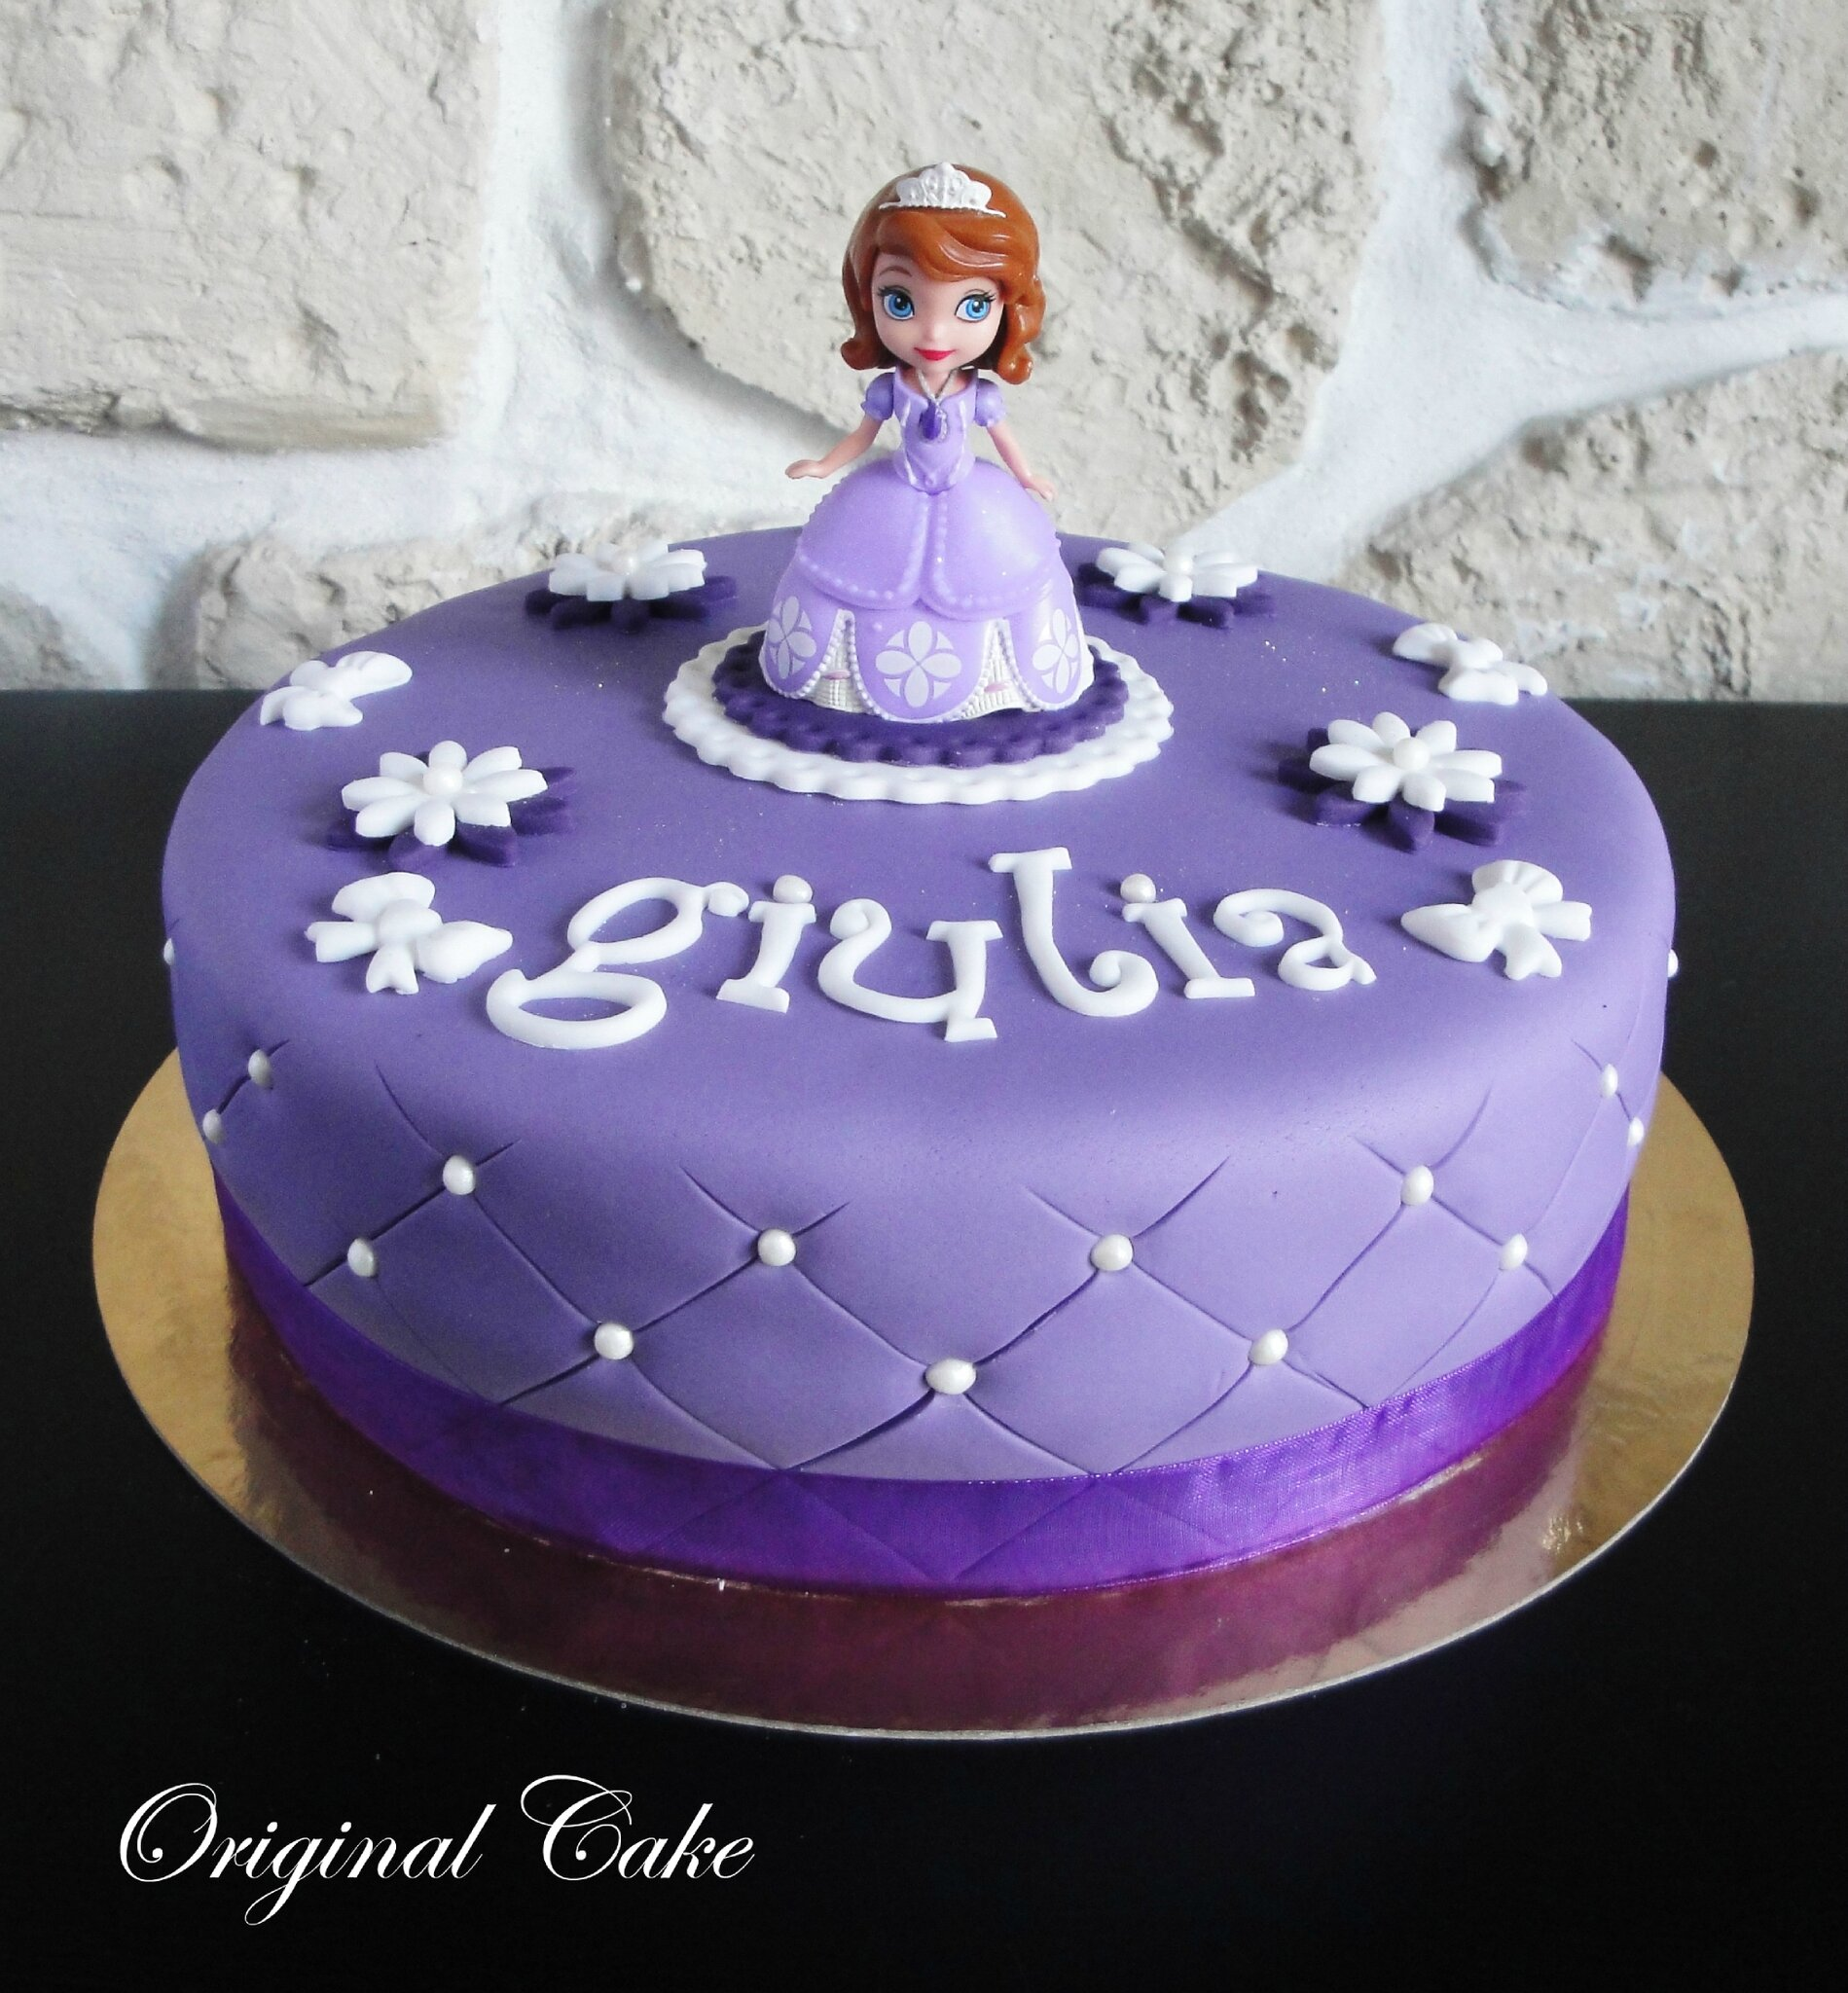 Decoration Gateau Originale Gâteau Princesse Sofia Original Cake